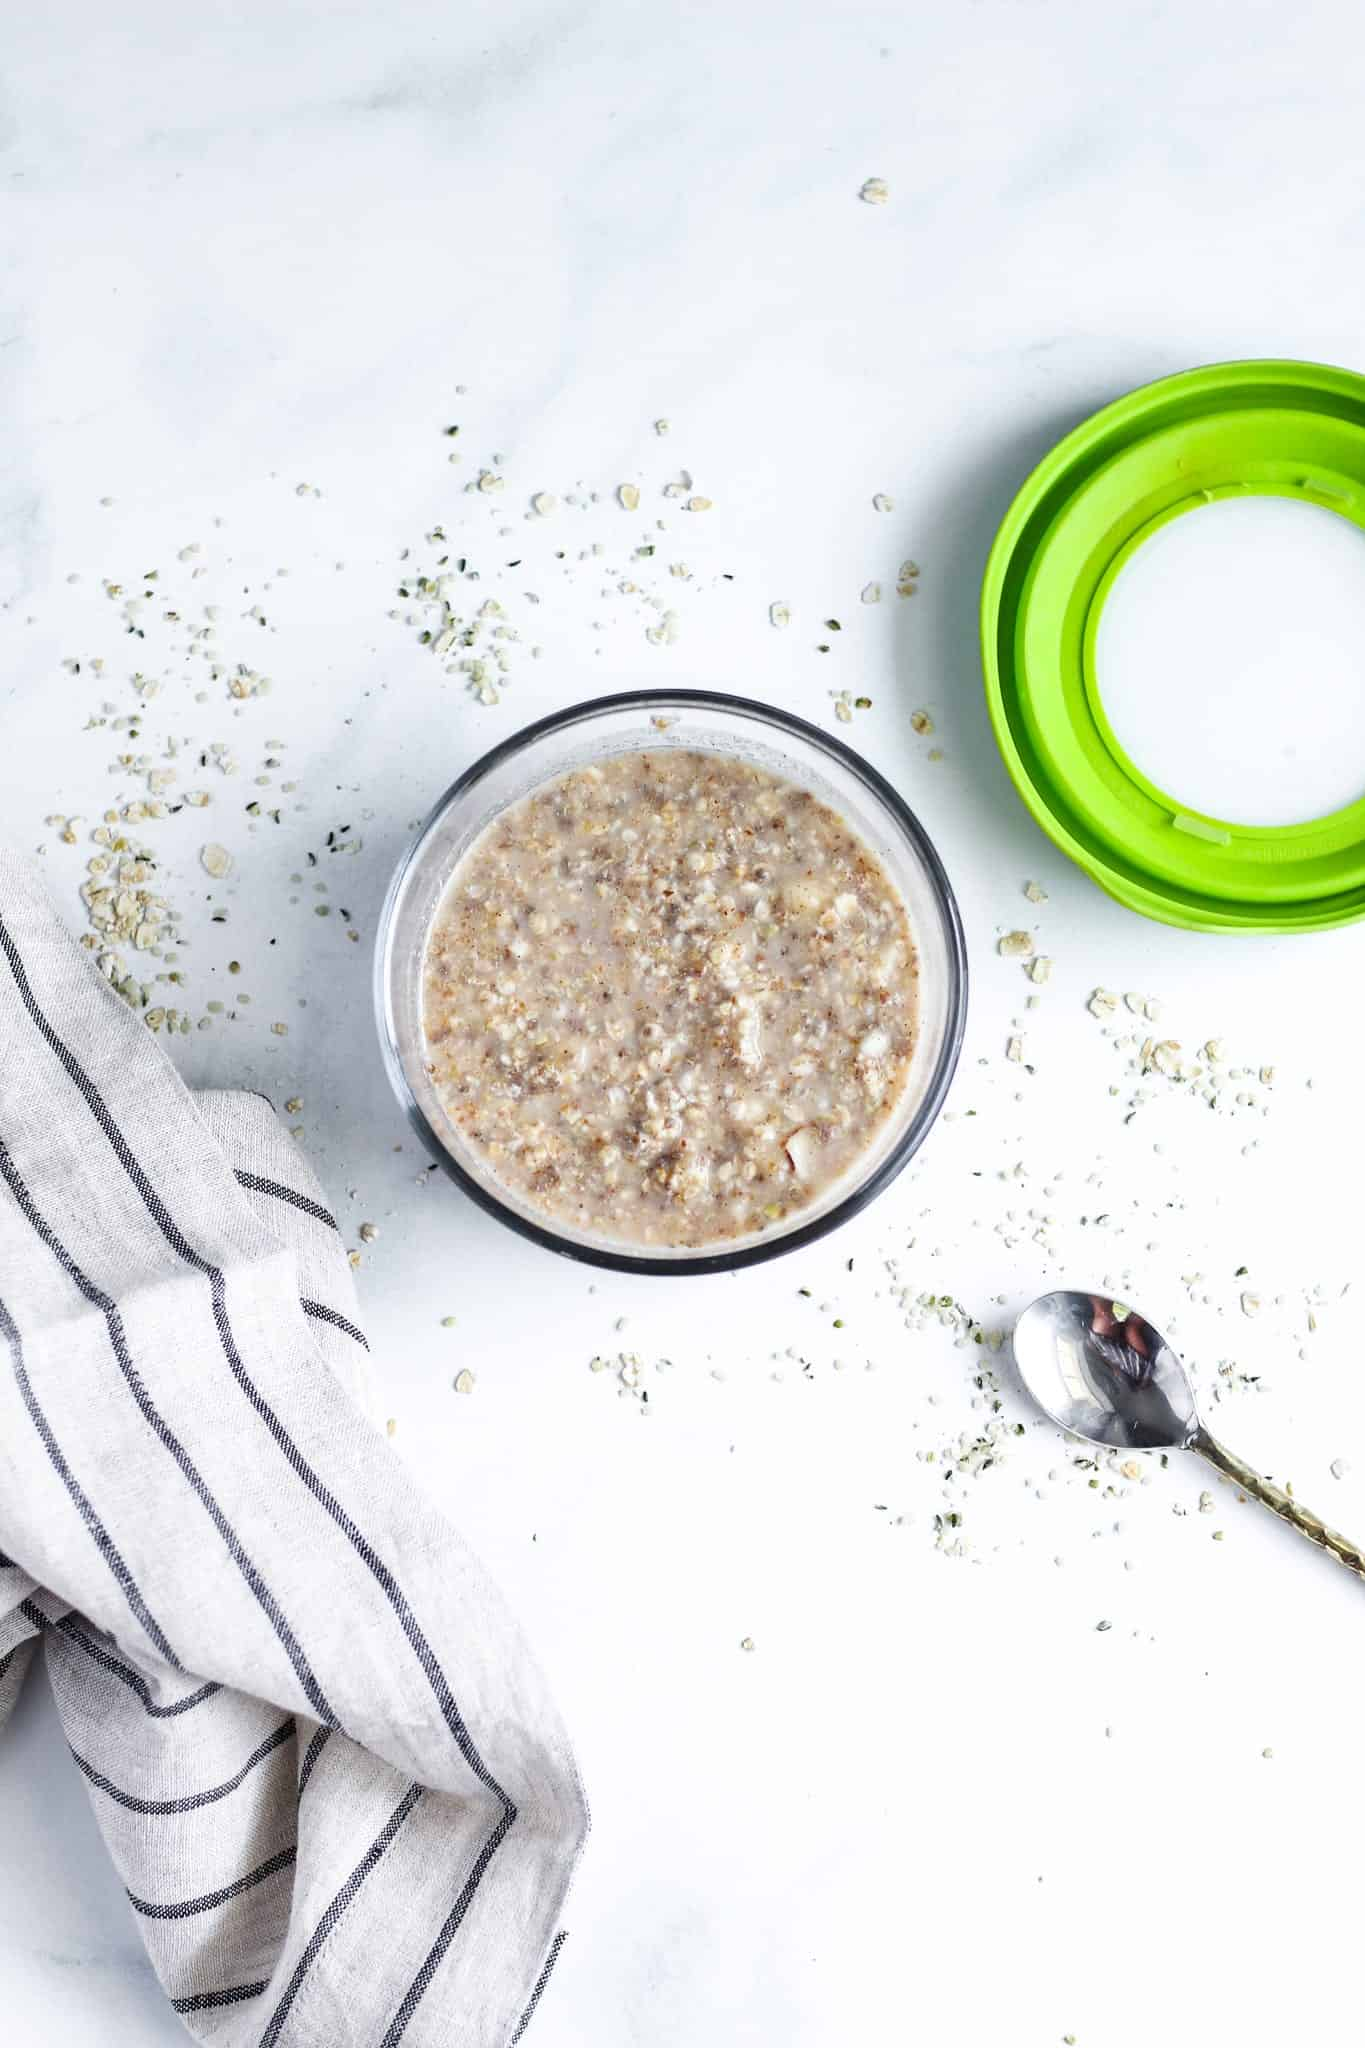 DIY Power Oatmeal Mix #glutenfree #dairyfree #lowfodmap #breakfast #tararochfordnutrition